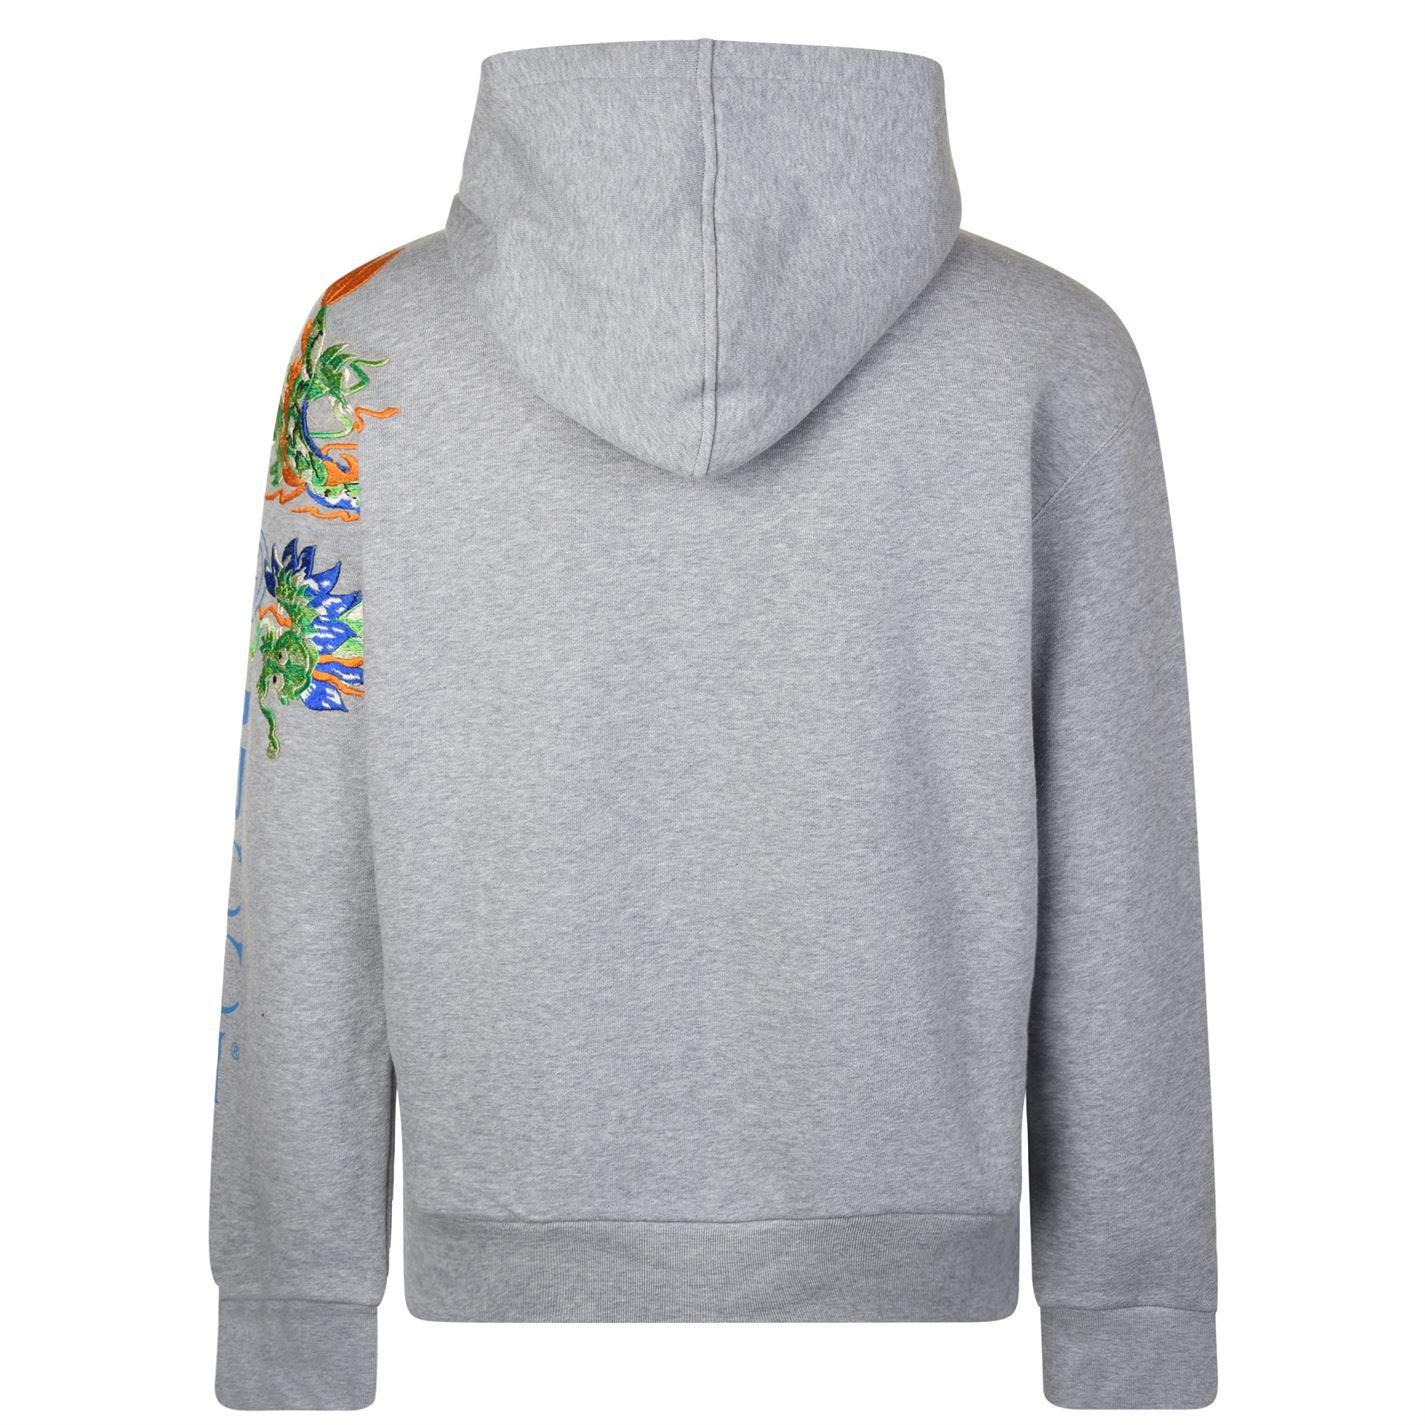 3dc3370ed Gucci - Gray Fake Logo Embroidered Hooded Sweatshirt for Men - Lyst. View  fullscreen